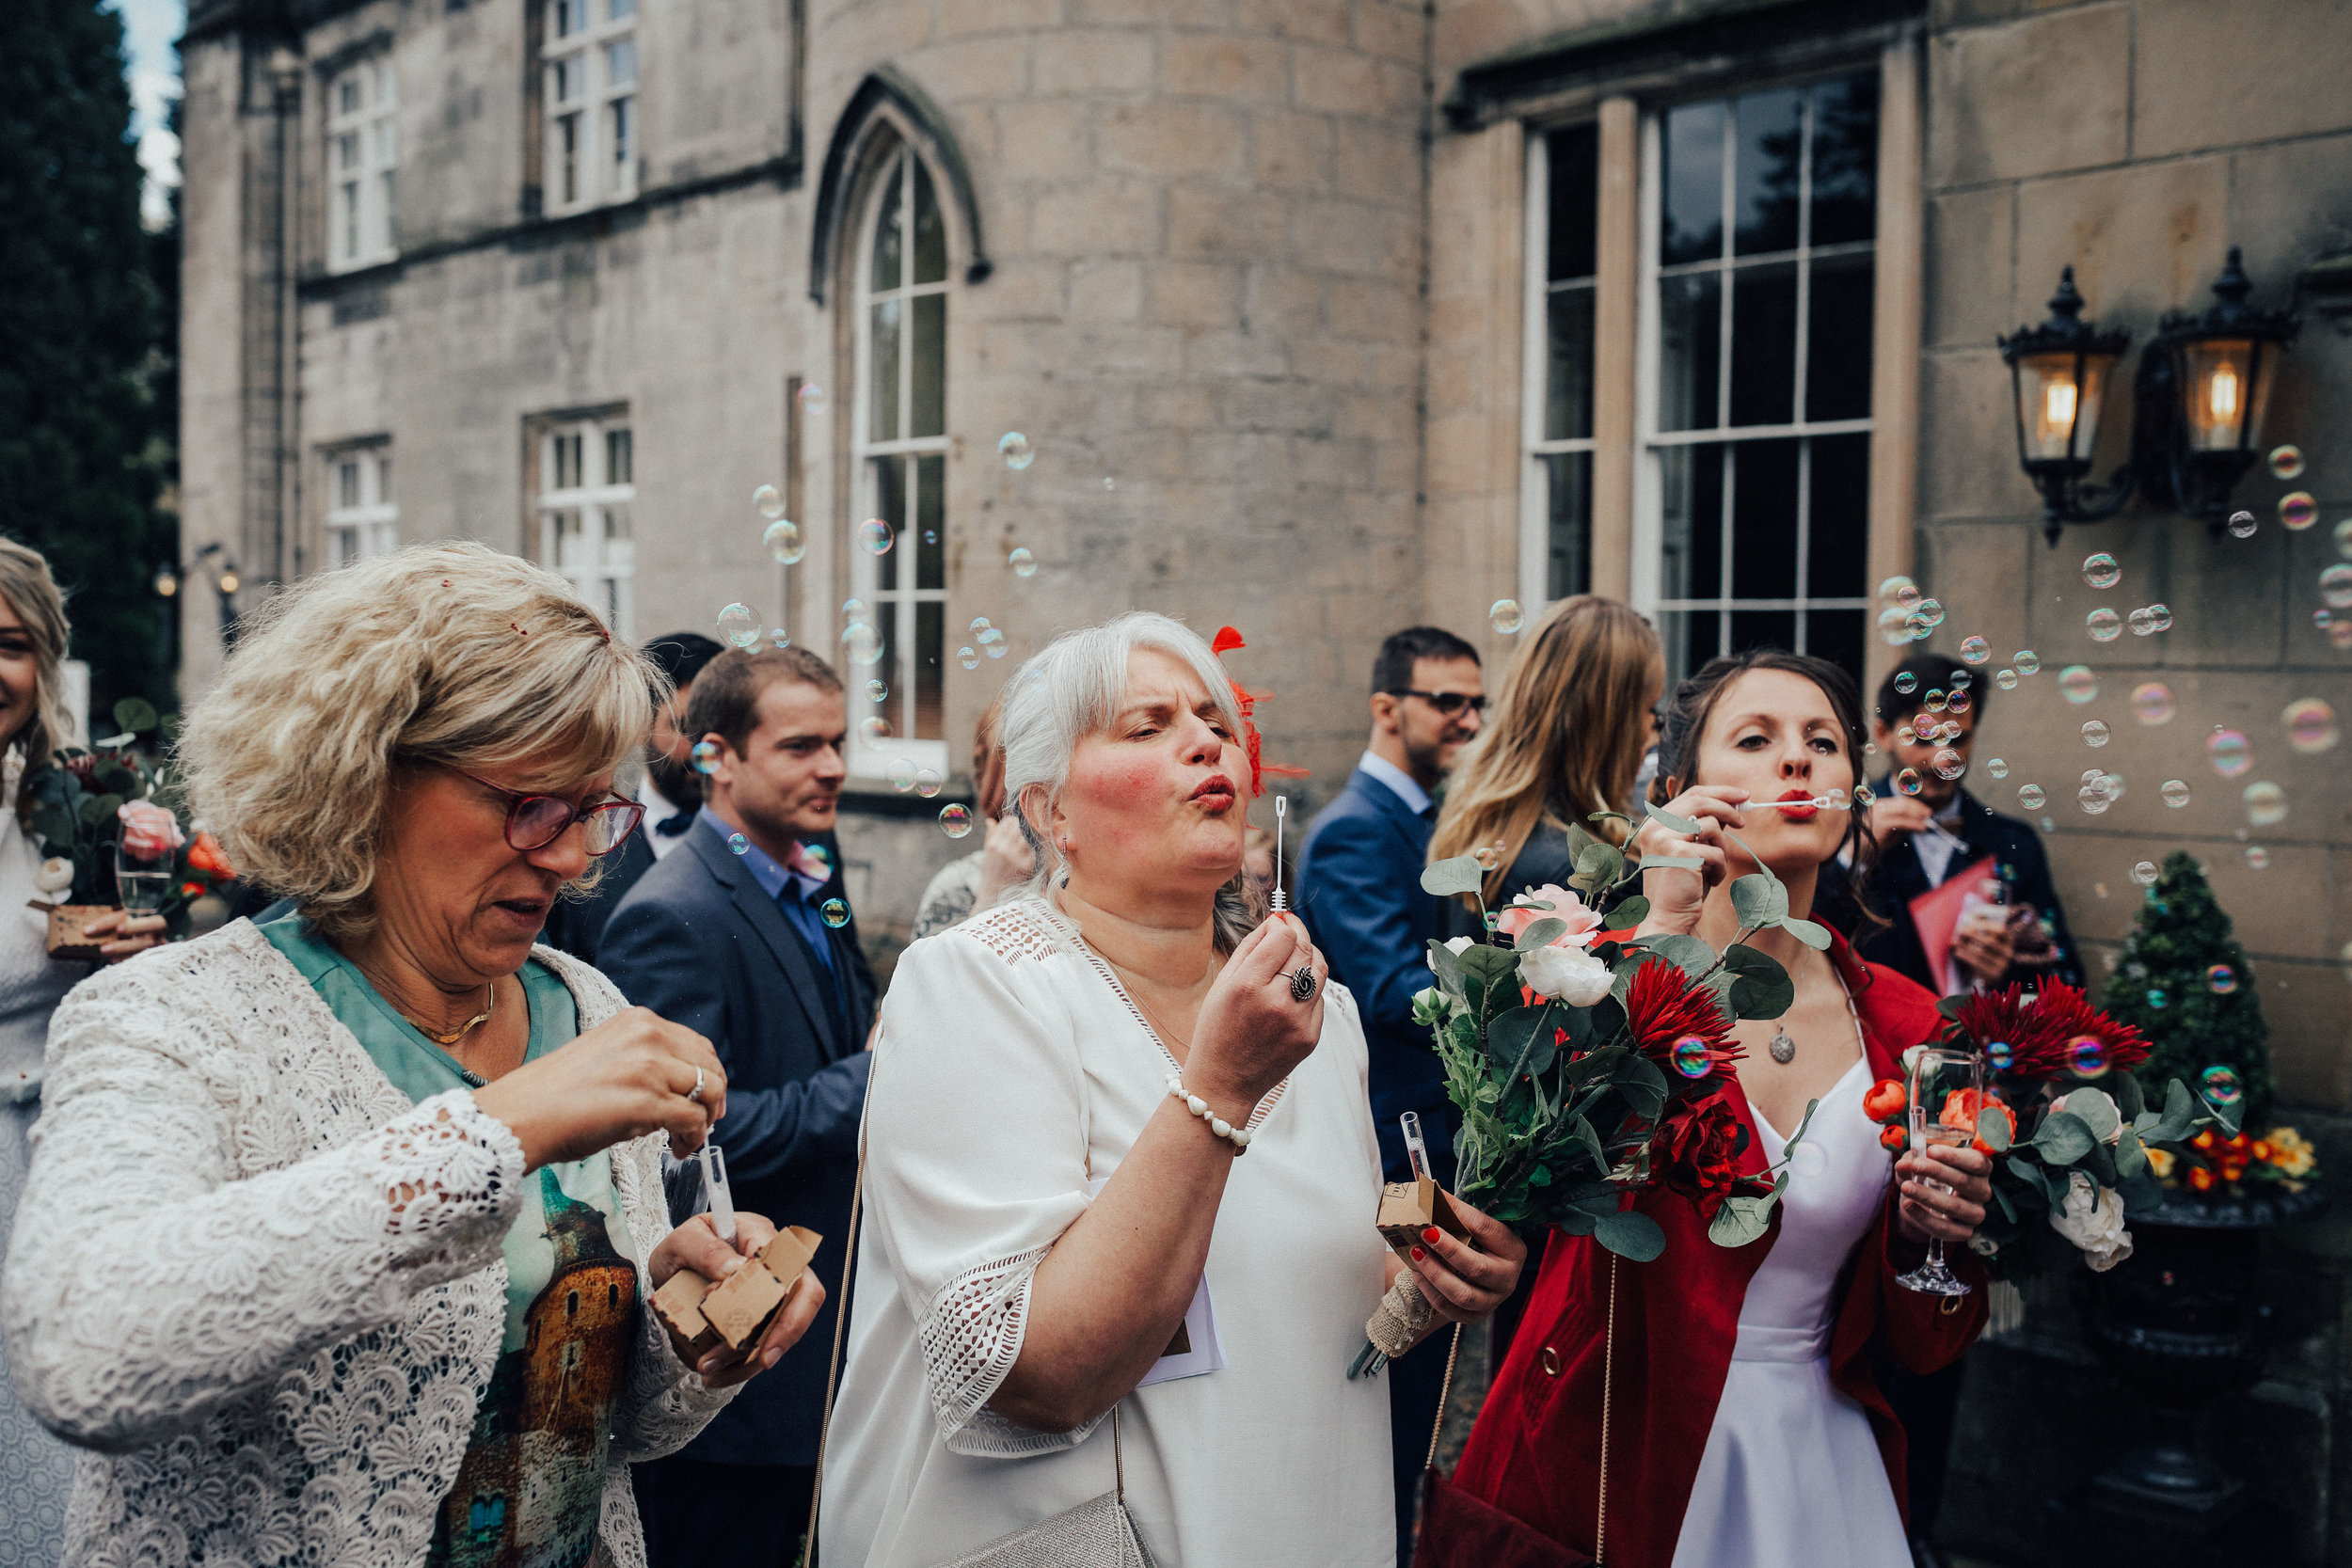 PJ_PHILLIPS_PHOTOGRAPHY_2018_SCOTLAND_WEDDING_PHOTOOGRAPHER_78.jpg